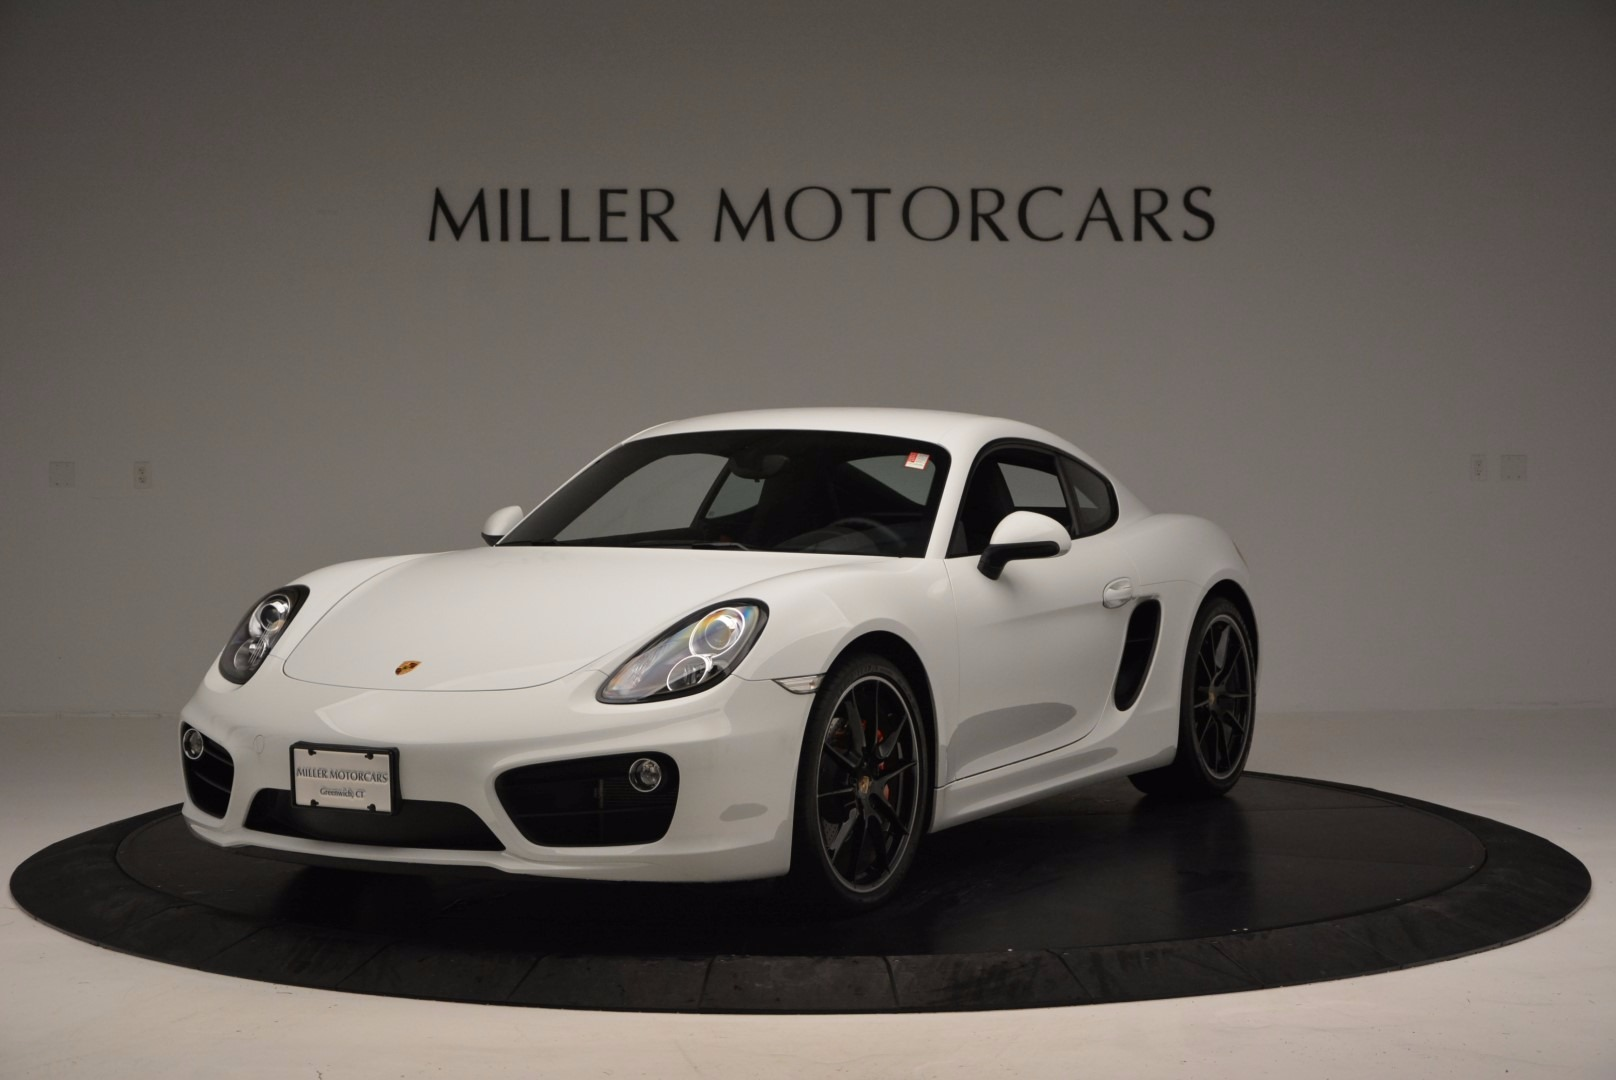 Used 2014 Porsche Cayman S for sale Sold at Bugatti of Greenwich in Greenwich CT 06830 1